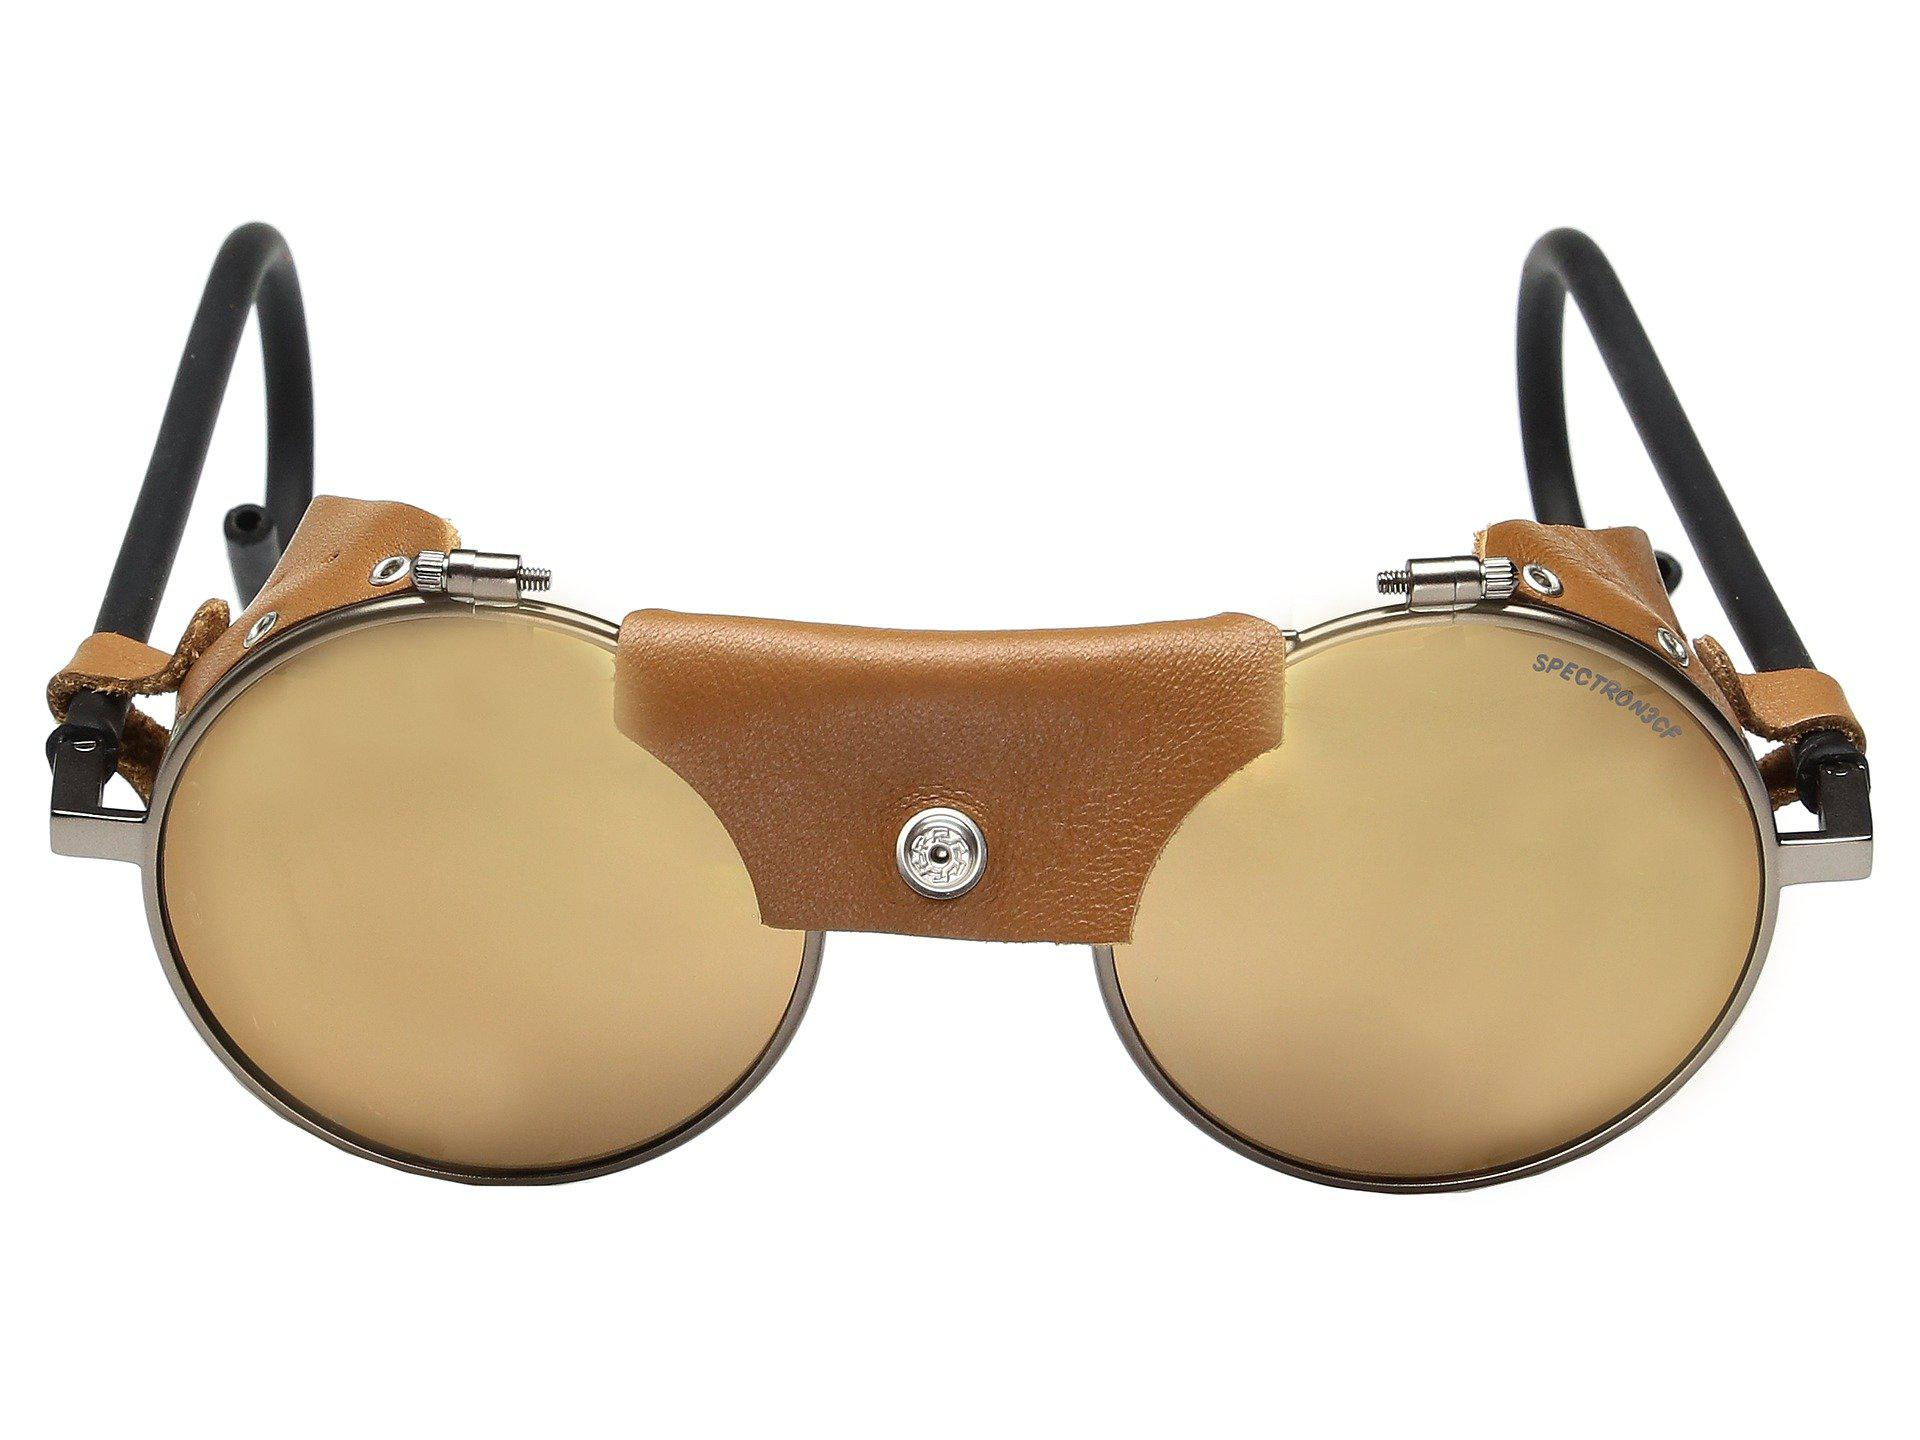 576cec920bd Julbo Eyewear - Vermont Classic Sunglasses (brass brown With Spectron 3  Color Flash Lens. View fullscreen